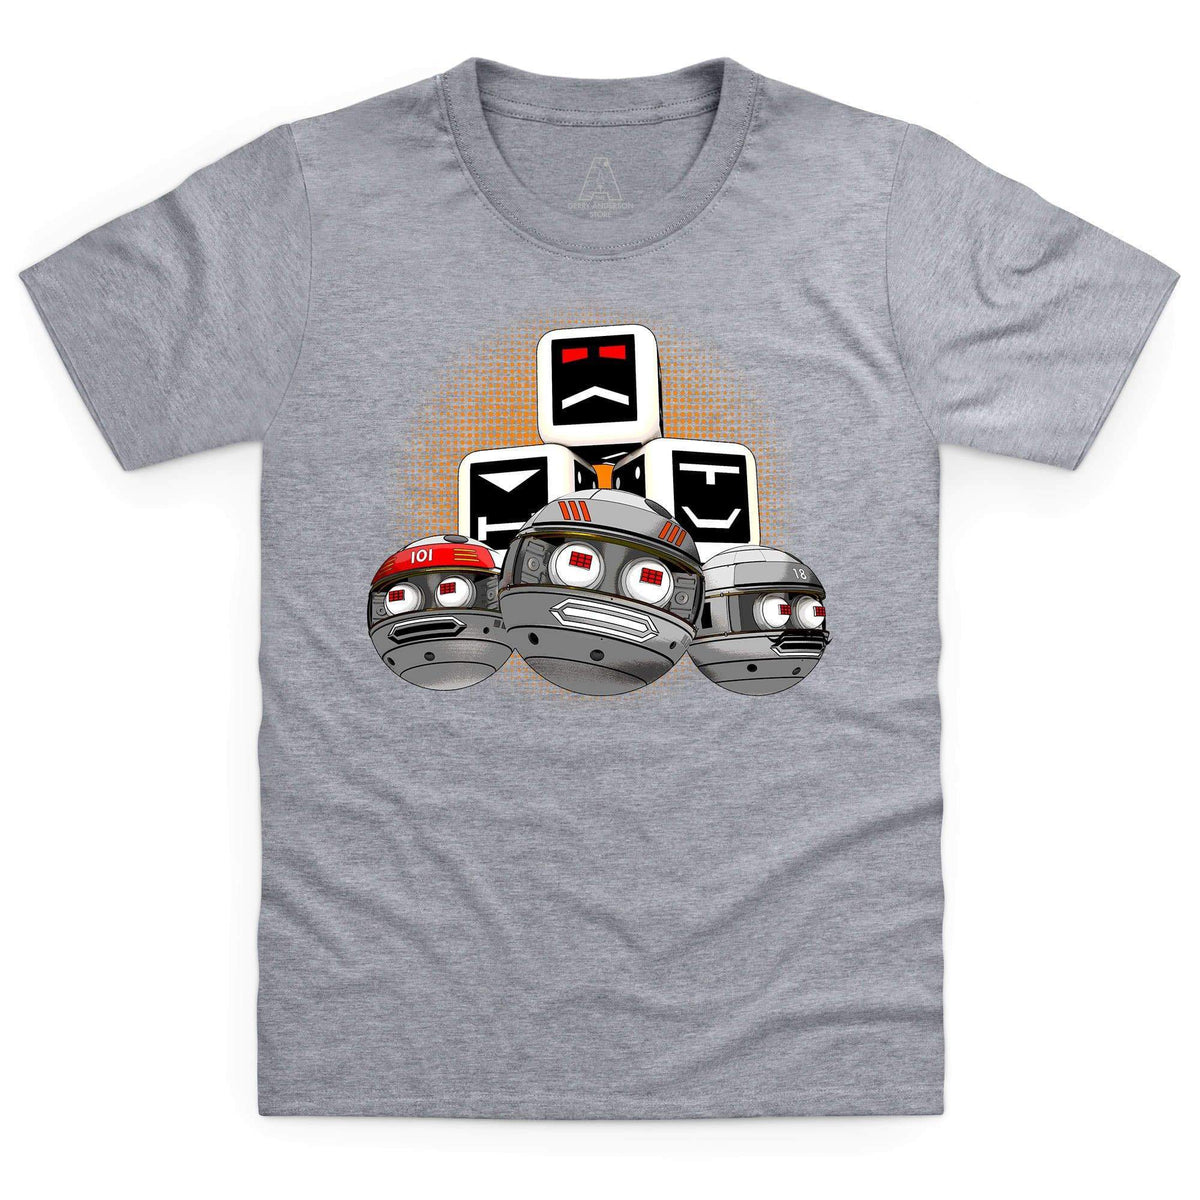 Terrahawks Zeroids & Cubes Design Kid's T-Shirt [Official & Exclusive] - The Gerry Anderson Store